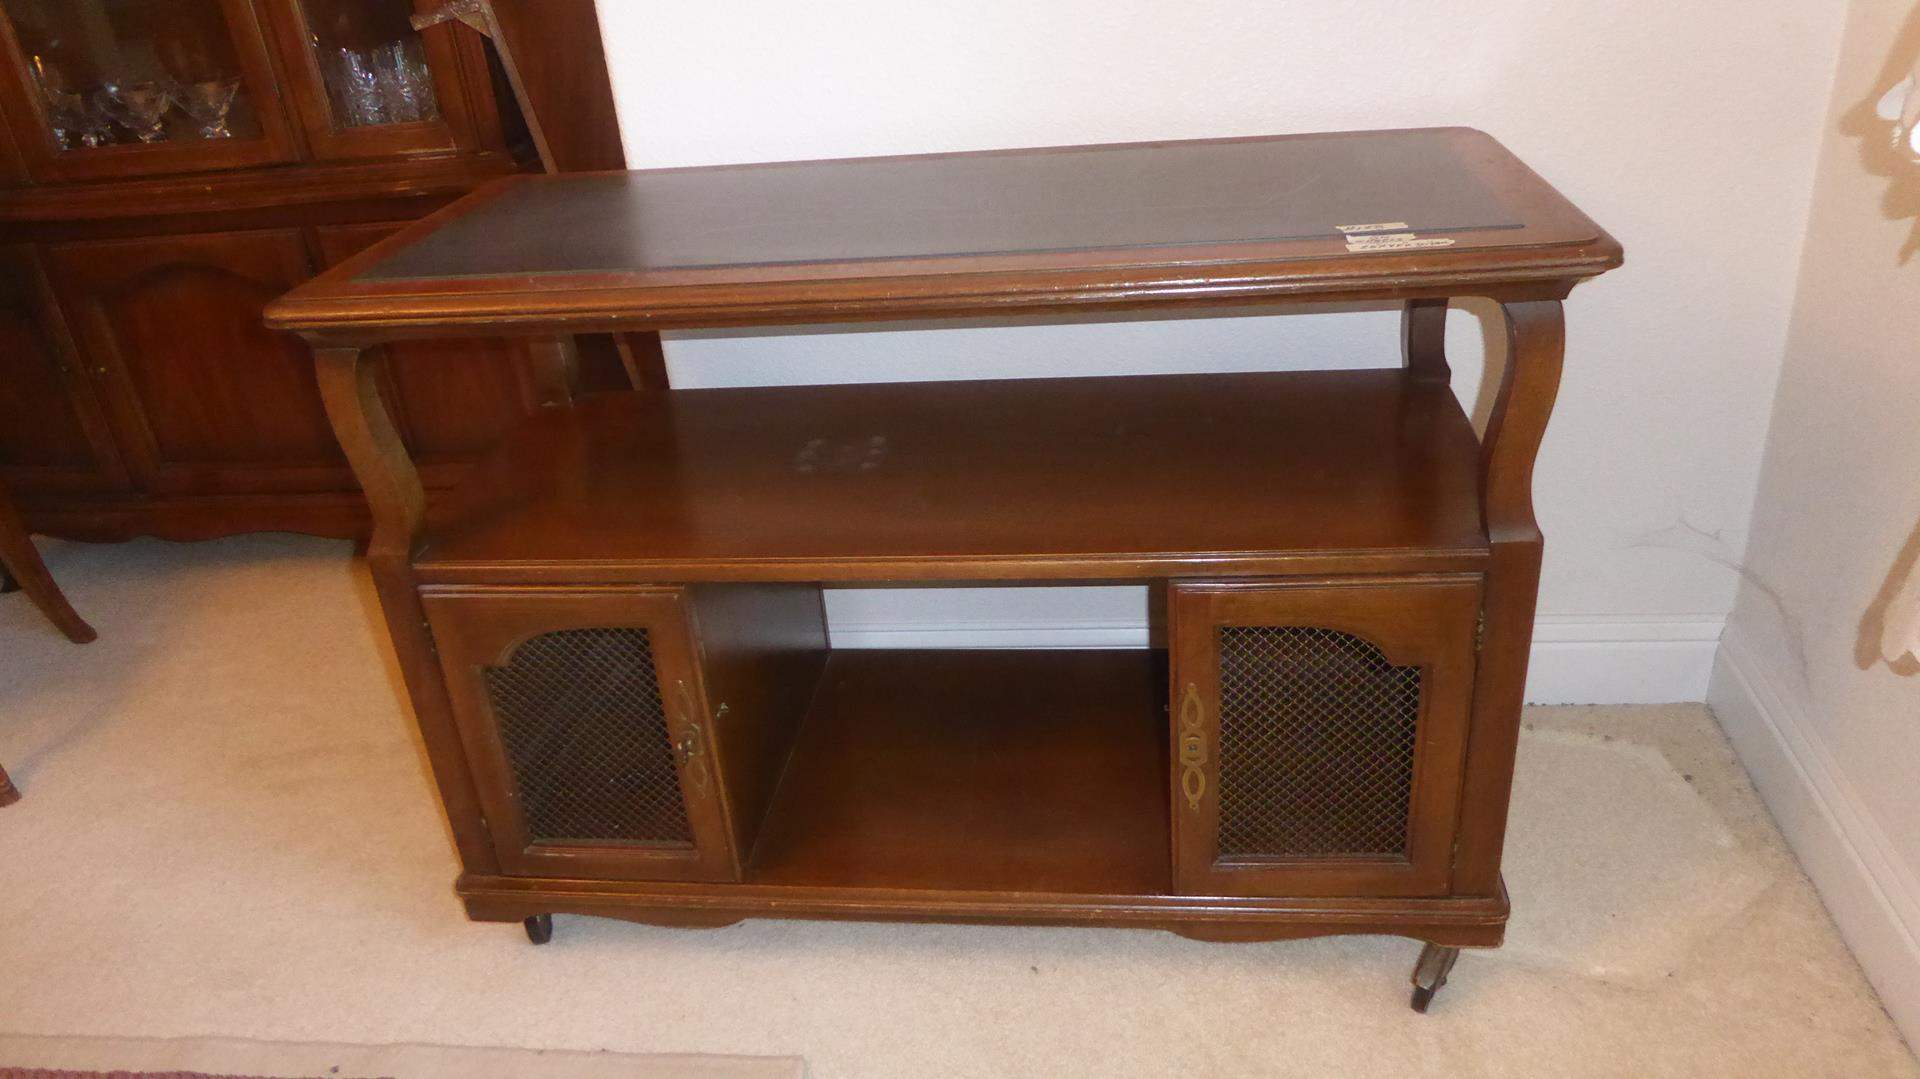 Lot # 128 - Vintage Mid Century Drexel Heritage Wooden Bar Cart Console Table On Wheels (main image)